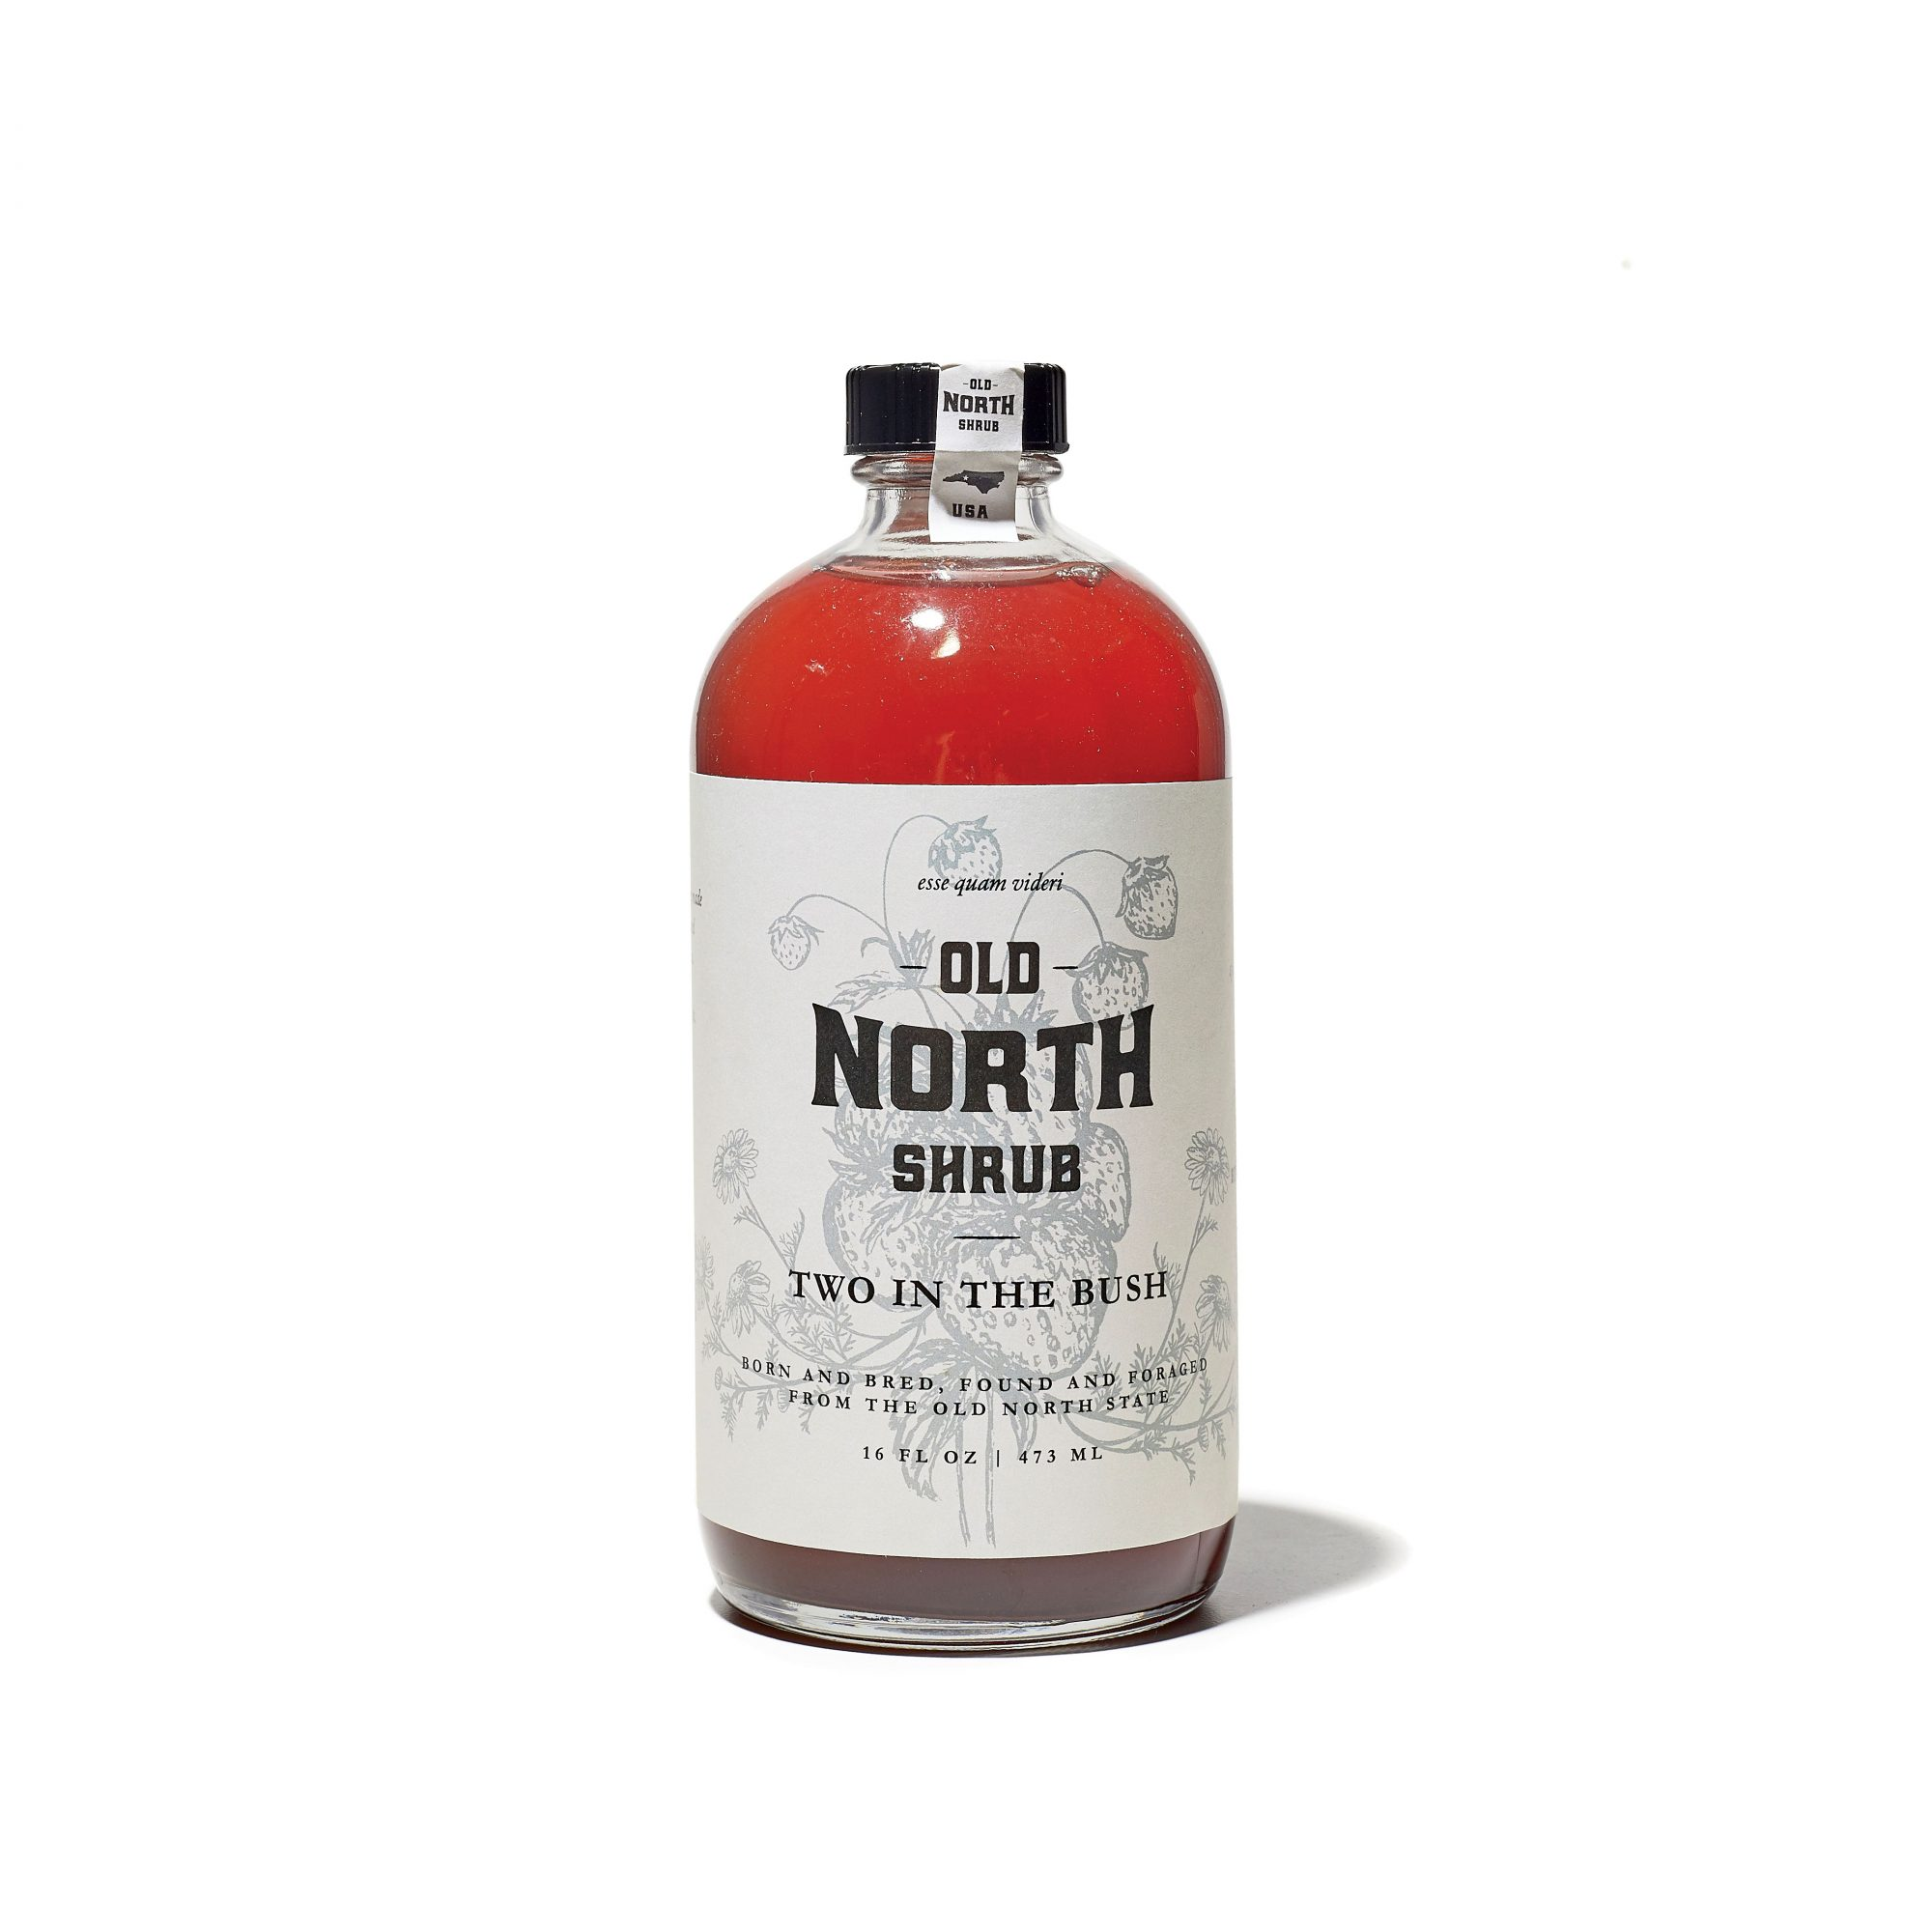 2018 Food Awards: Old North Shrub Two In The Bush